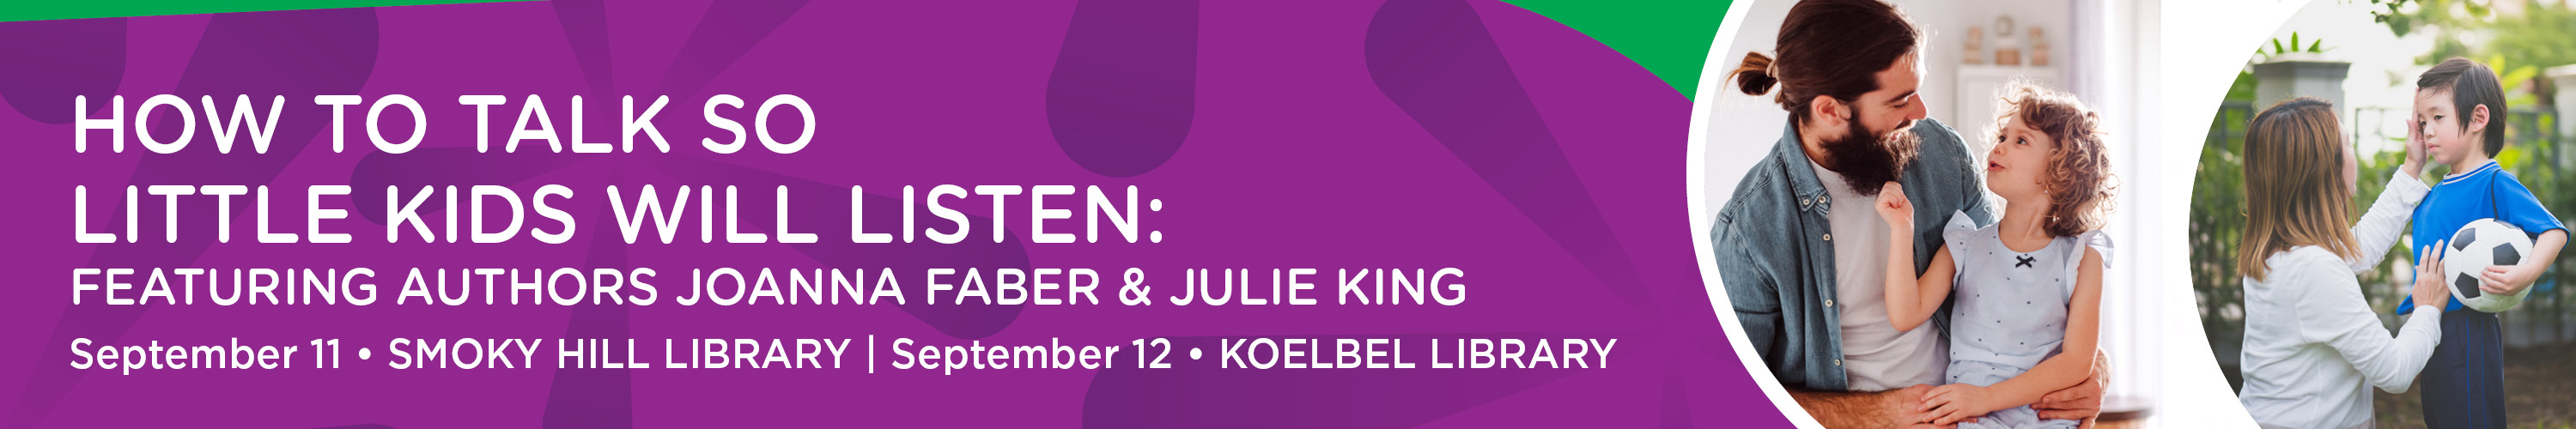 <p>How to talk so little kids will listen: featuring authors Joanna Faber and Julie King, September 11 and 12</p>